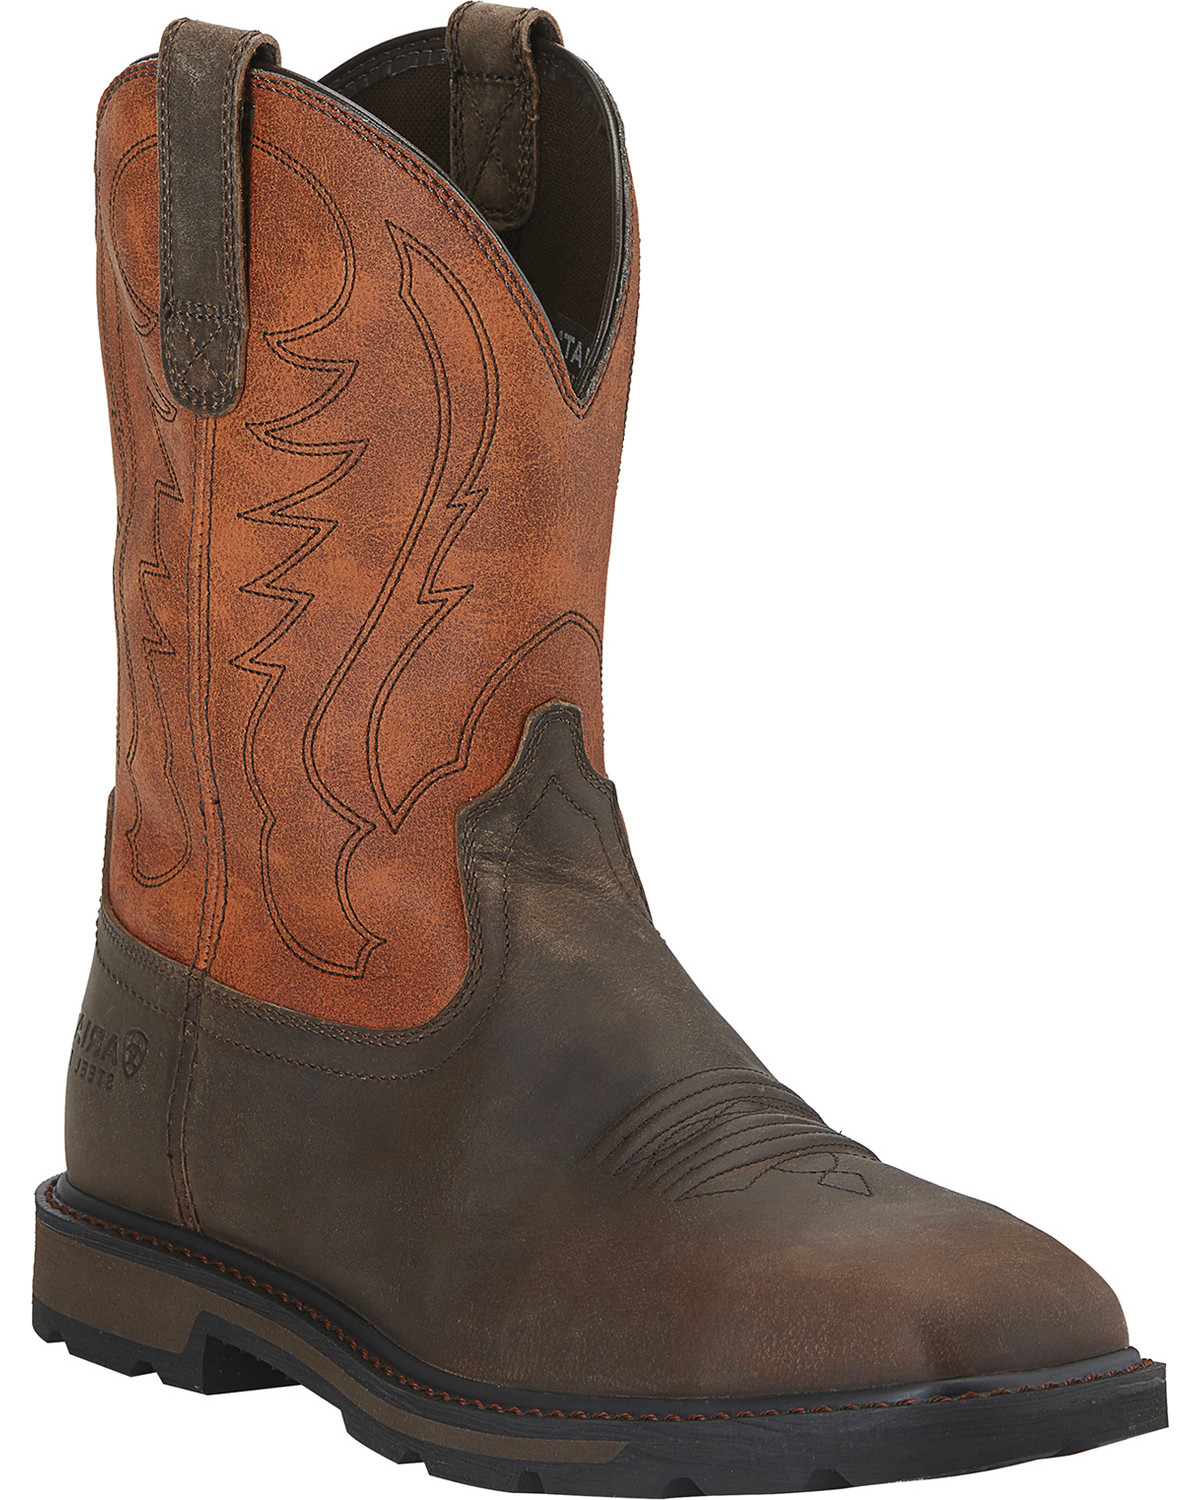 Ariat Men S Groundbreaker Steel Toe Western Work Boots